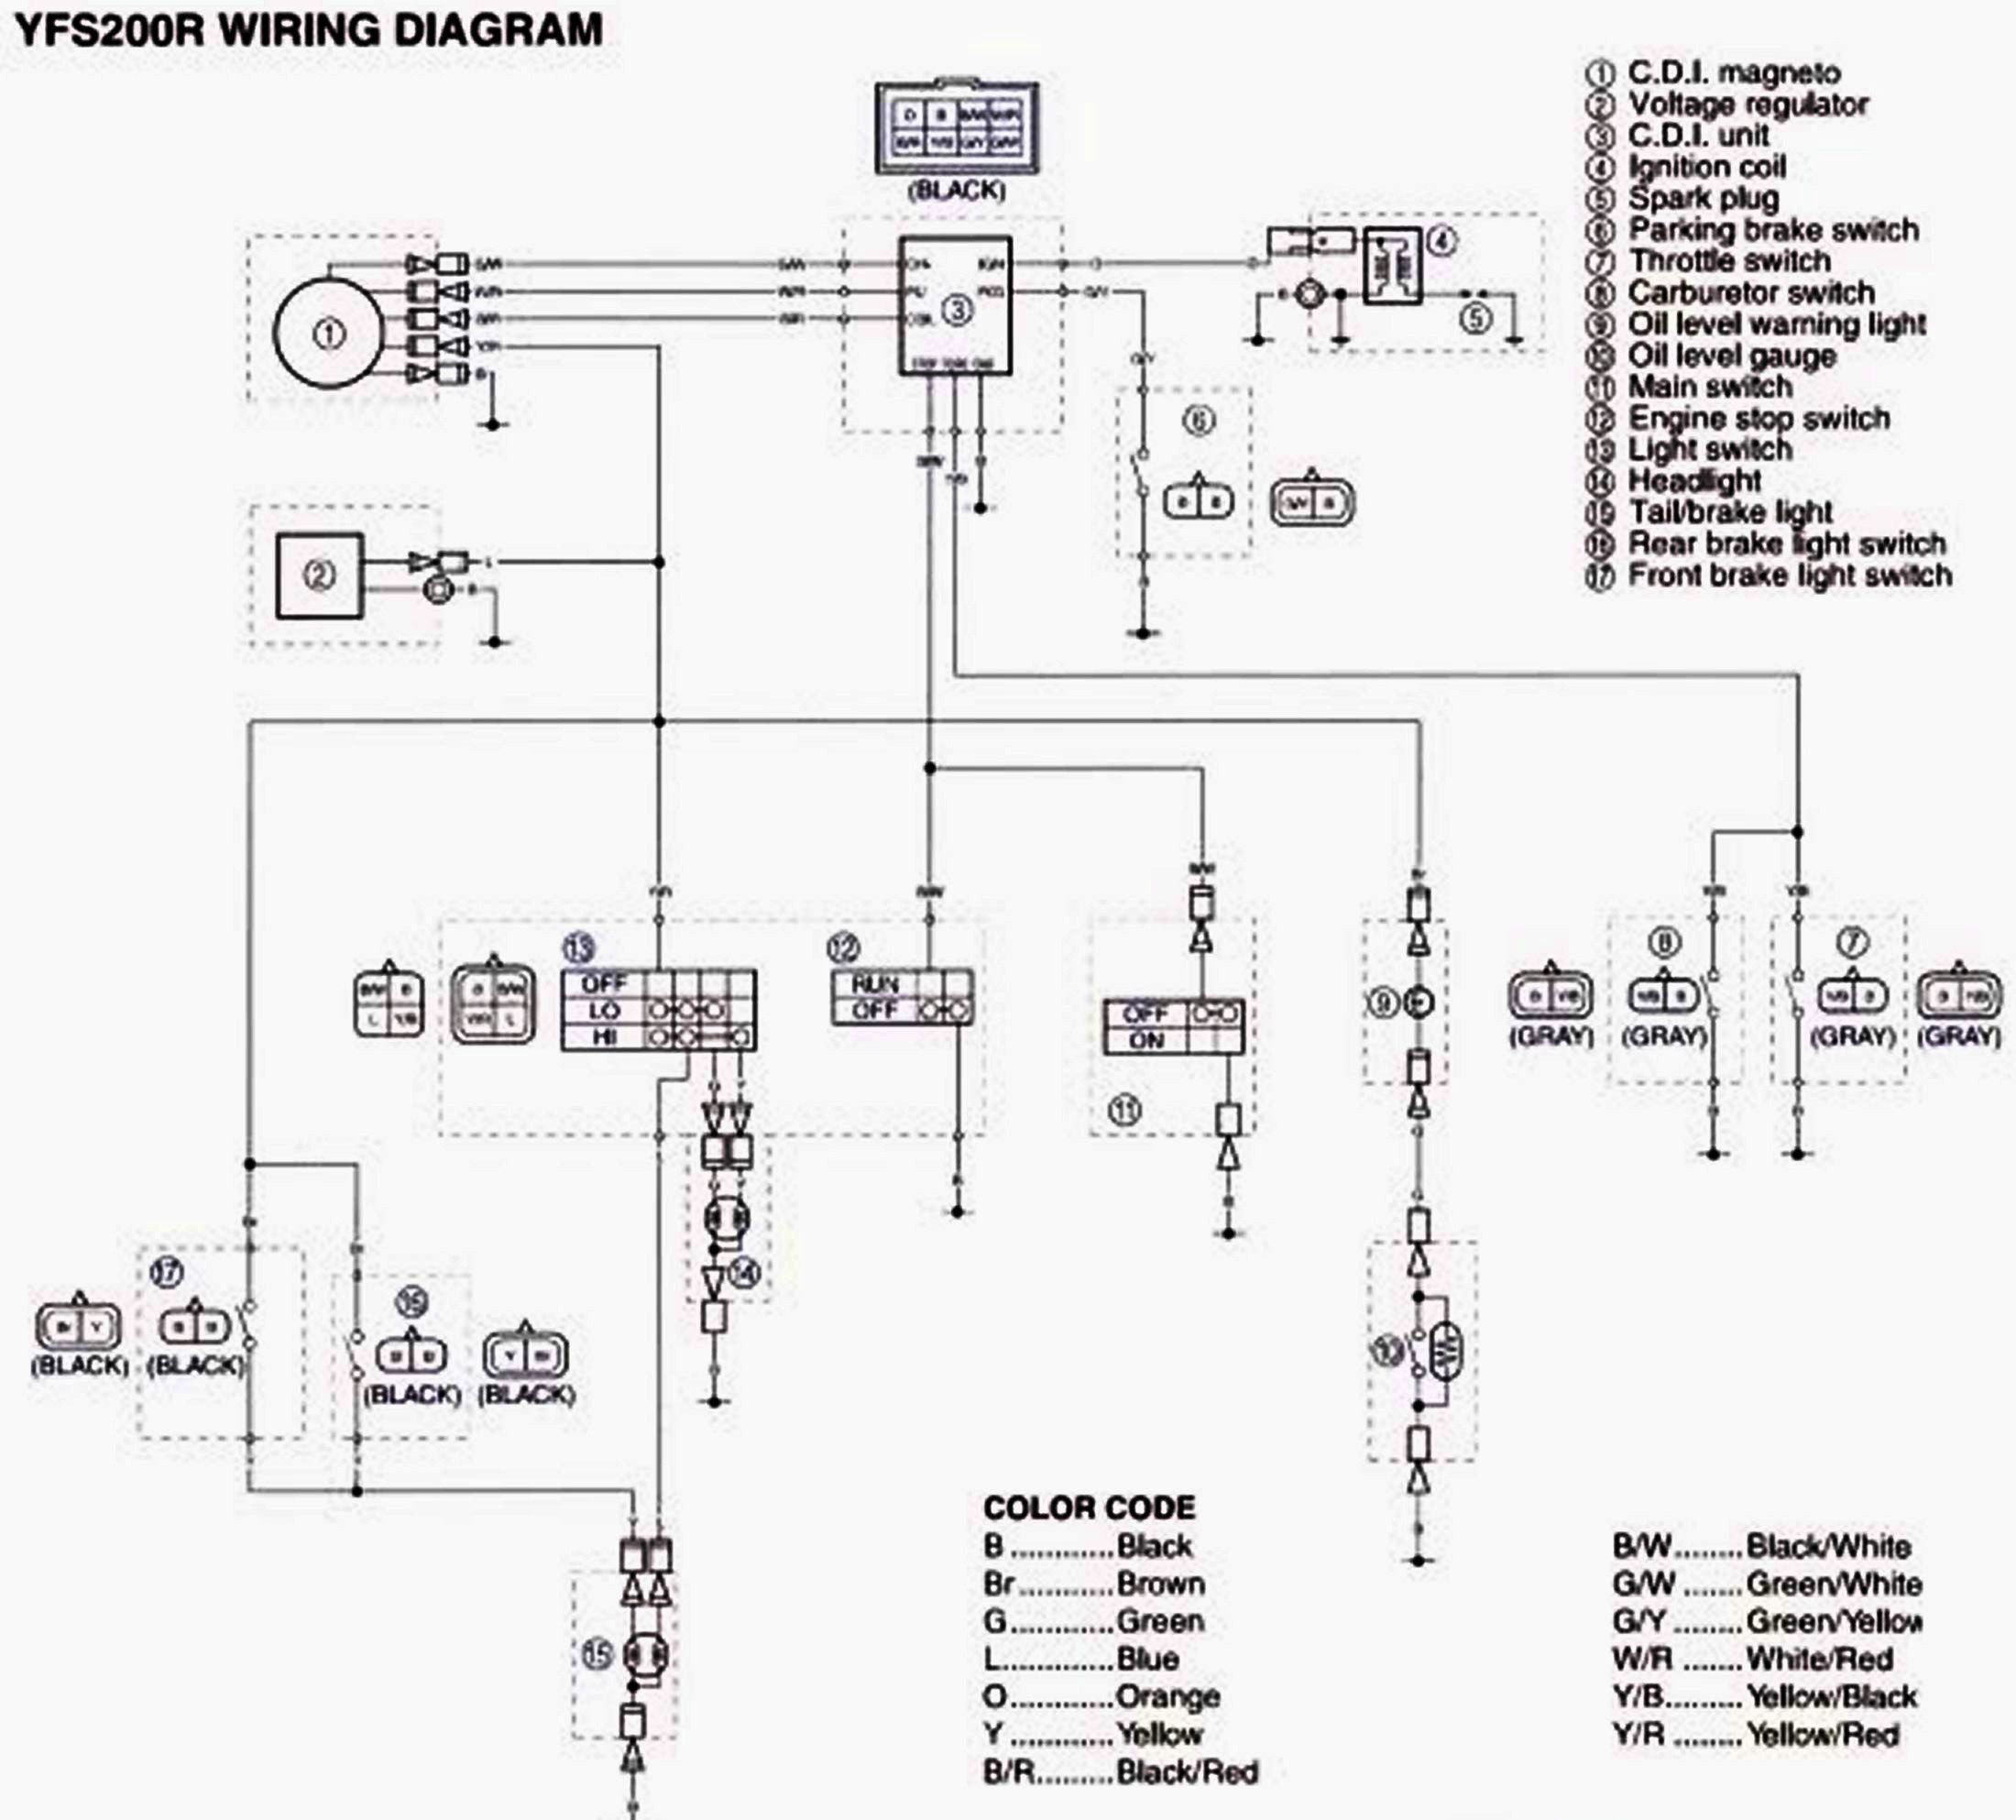 1998 yamaha g16 wiring diagram best wiring library Yamaha Gas Golf Cart Wiring Diagram 1998 yamaha g16e wiring diagram images gallery